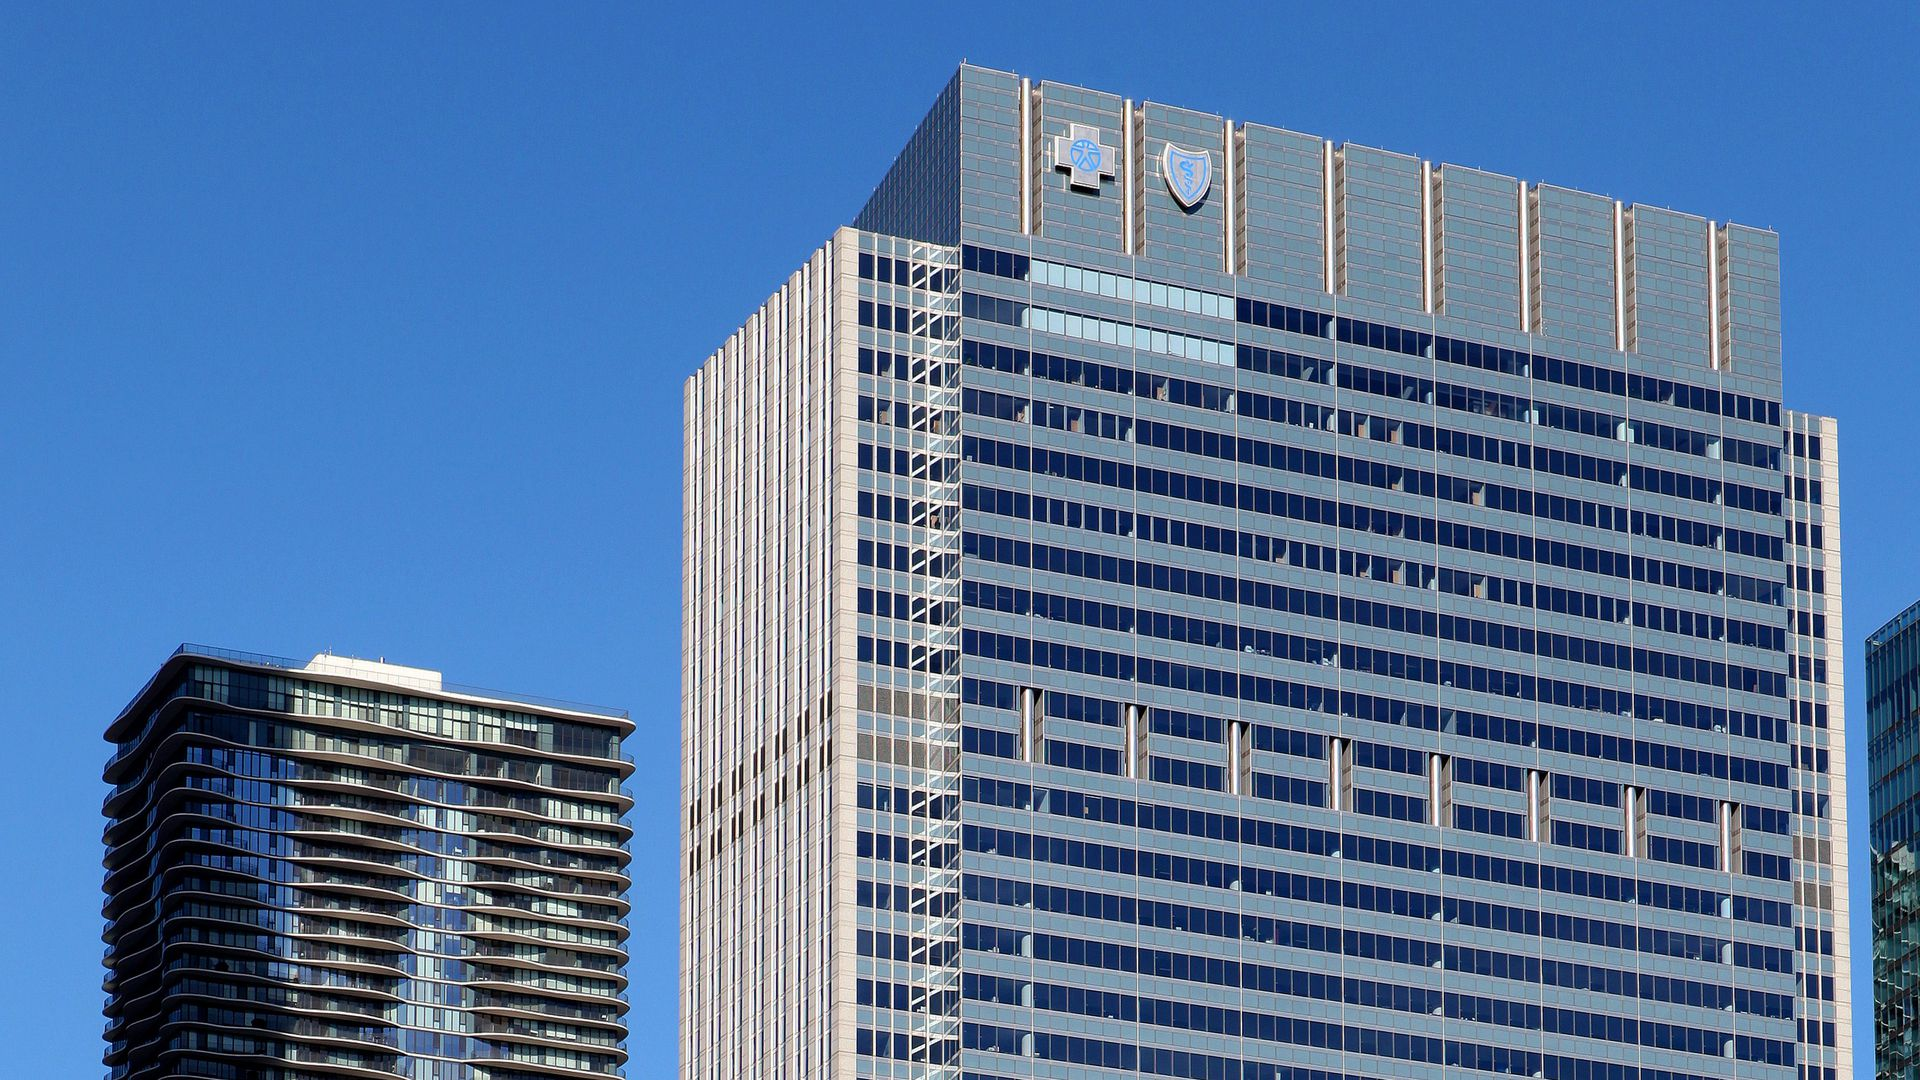 Two tall buildings with the Blue Cross Blue Shield logo on the one in the foreground.